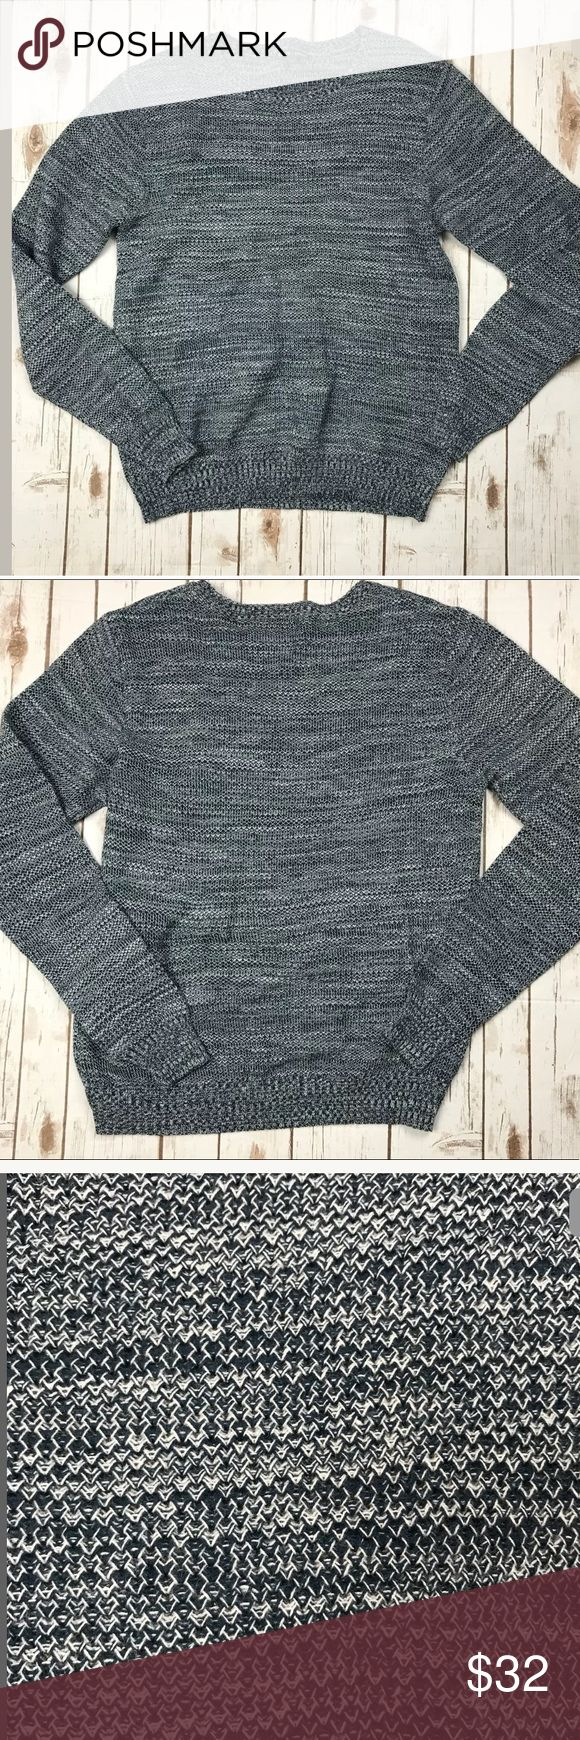 Slate & Stone Men's Linen Blend Sweater Slate & Stone Men's Linen Blend Blue Knit Long Sleeve Sweater SZ L  CONDITION: Pre Owned , Excellent Used Condition MEASUREMENTS are Approximate, laying flat & not stretched. 27.5 inches long-laying flat & not stretched 21.5 inches armpit to armpit- Laying flat & not stretched Slate & Stone Sweaters Crewneck